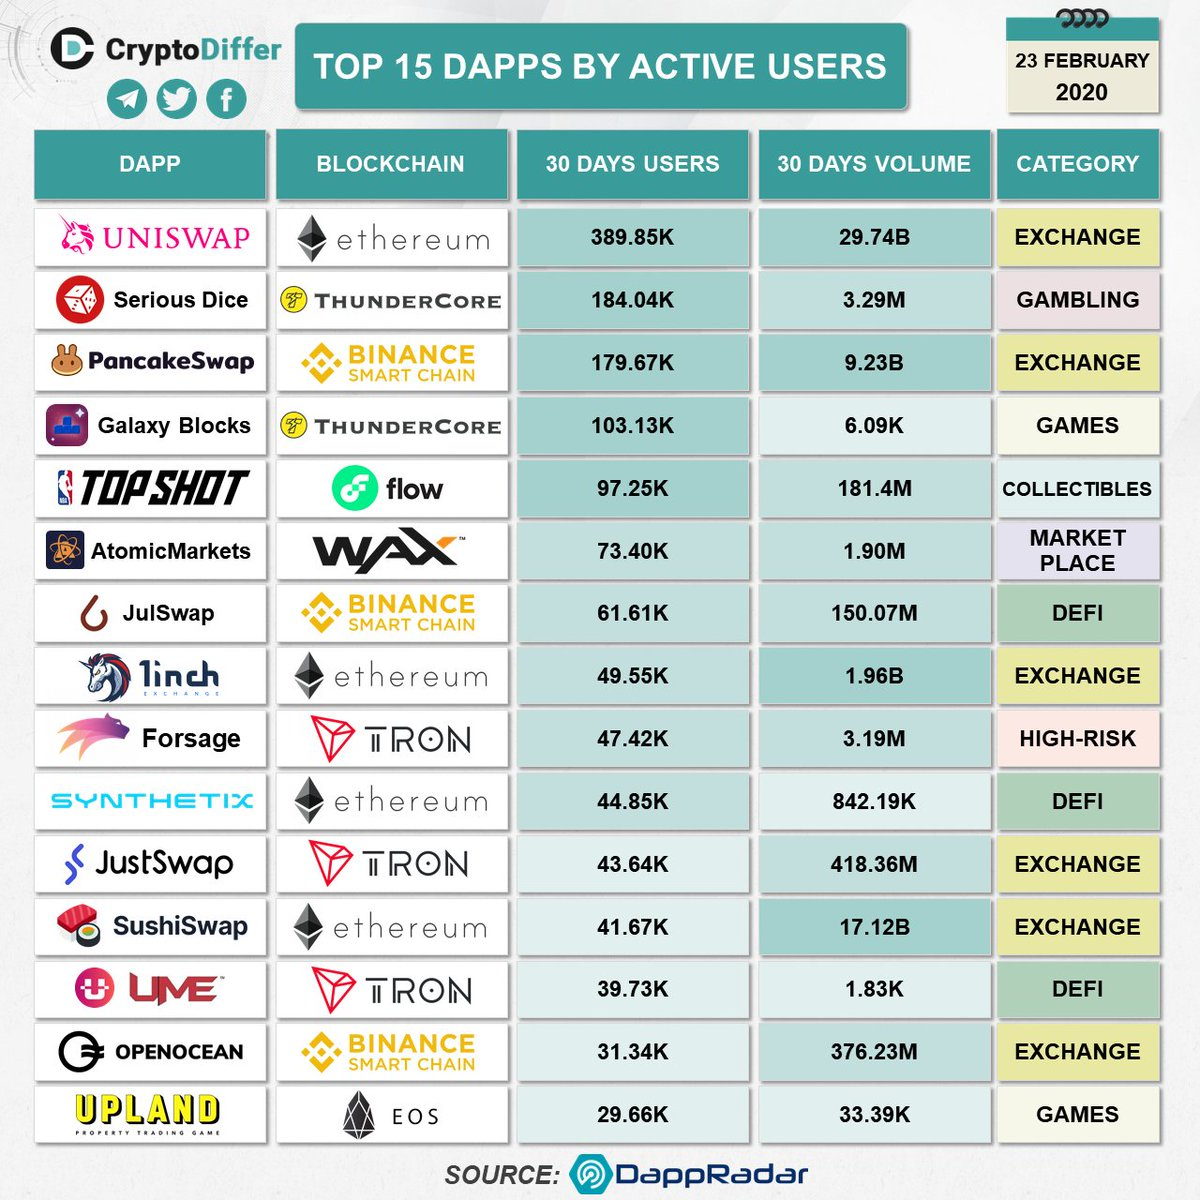 Cryptodiffer On Twitter Top 15 Dapps By Active Users Uni Eth Tt Cake Flow Wax Julb 1inch Trx Snx Sushi Eos Data From Dappradar Https T Co Hhdfusjhcl